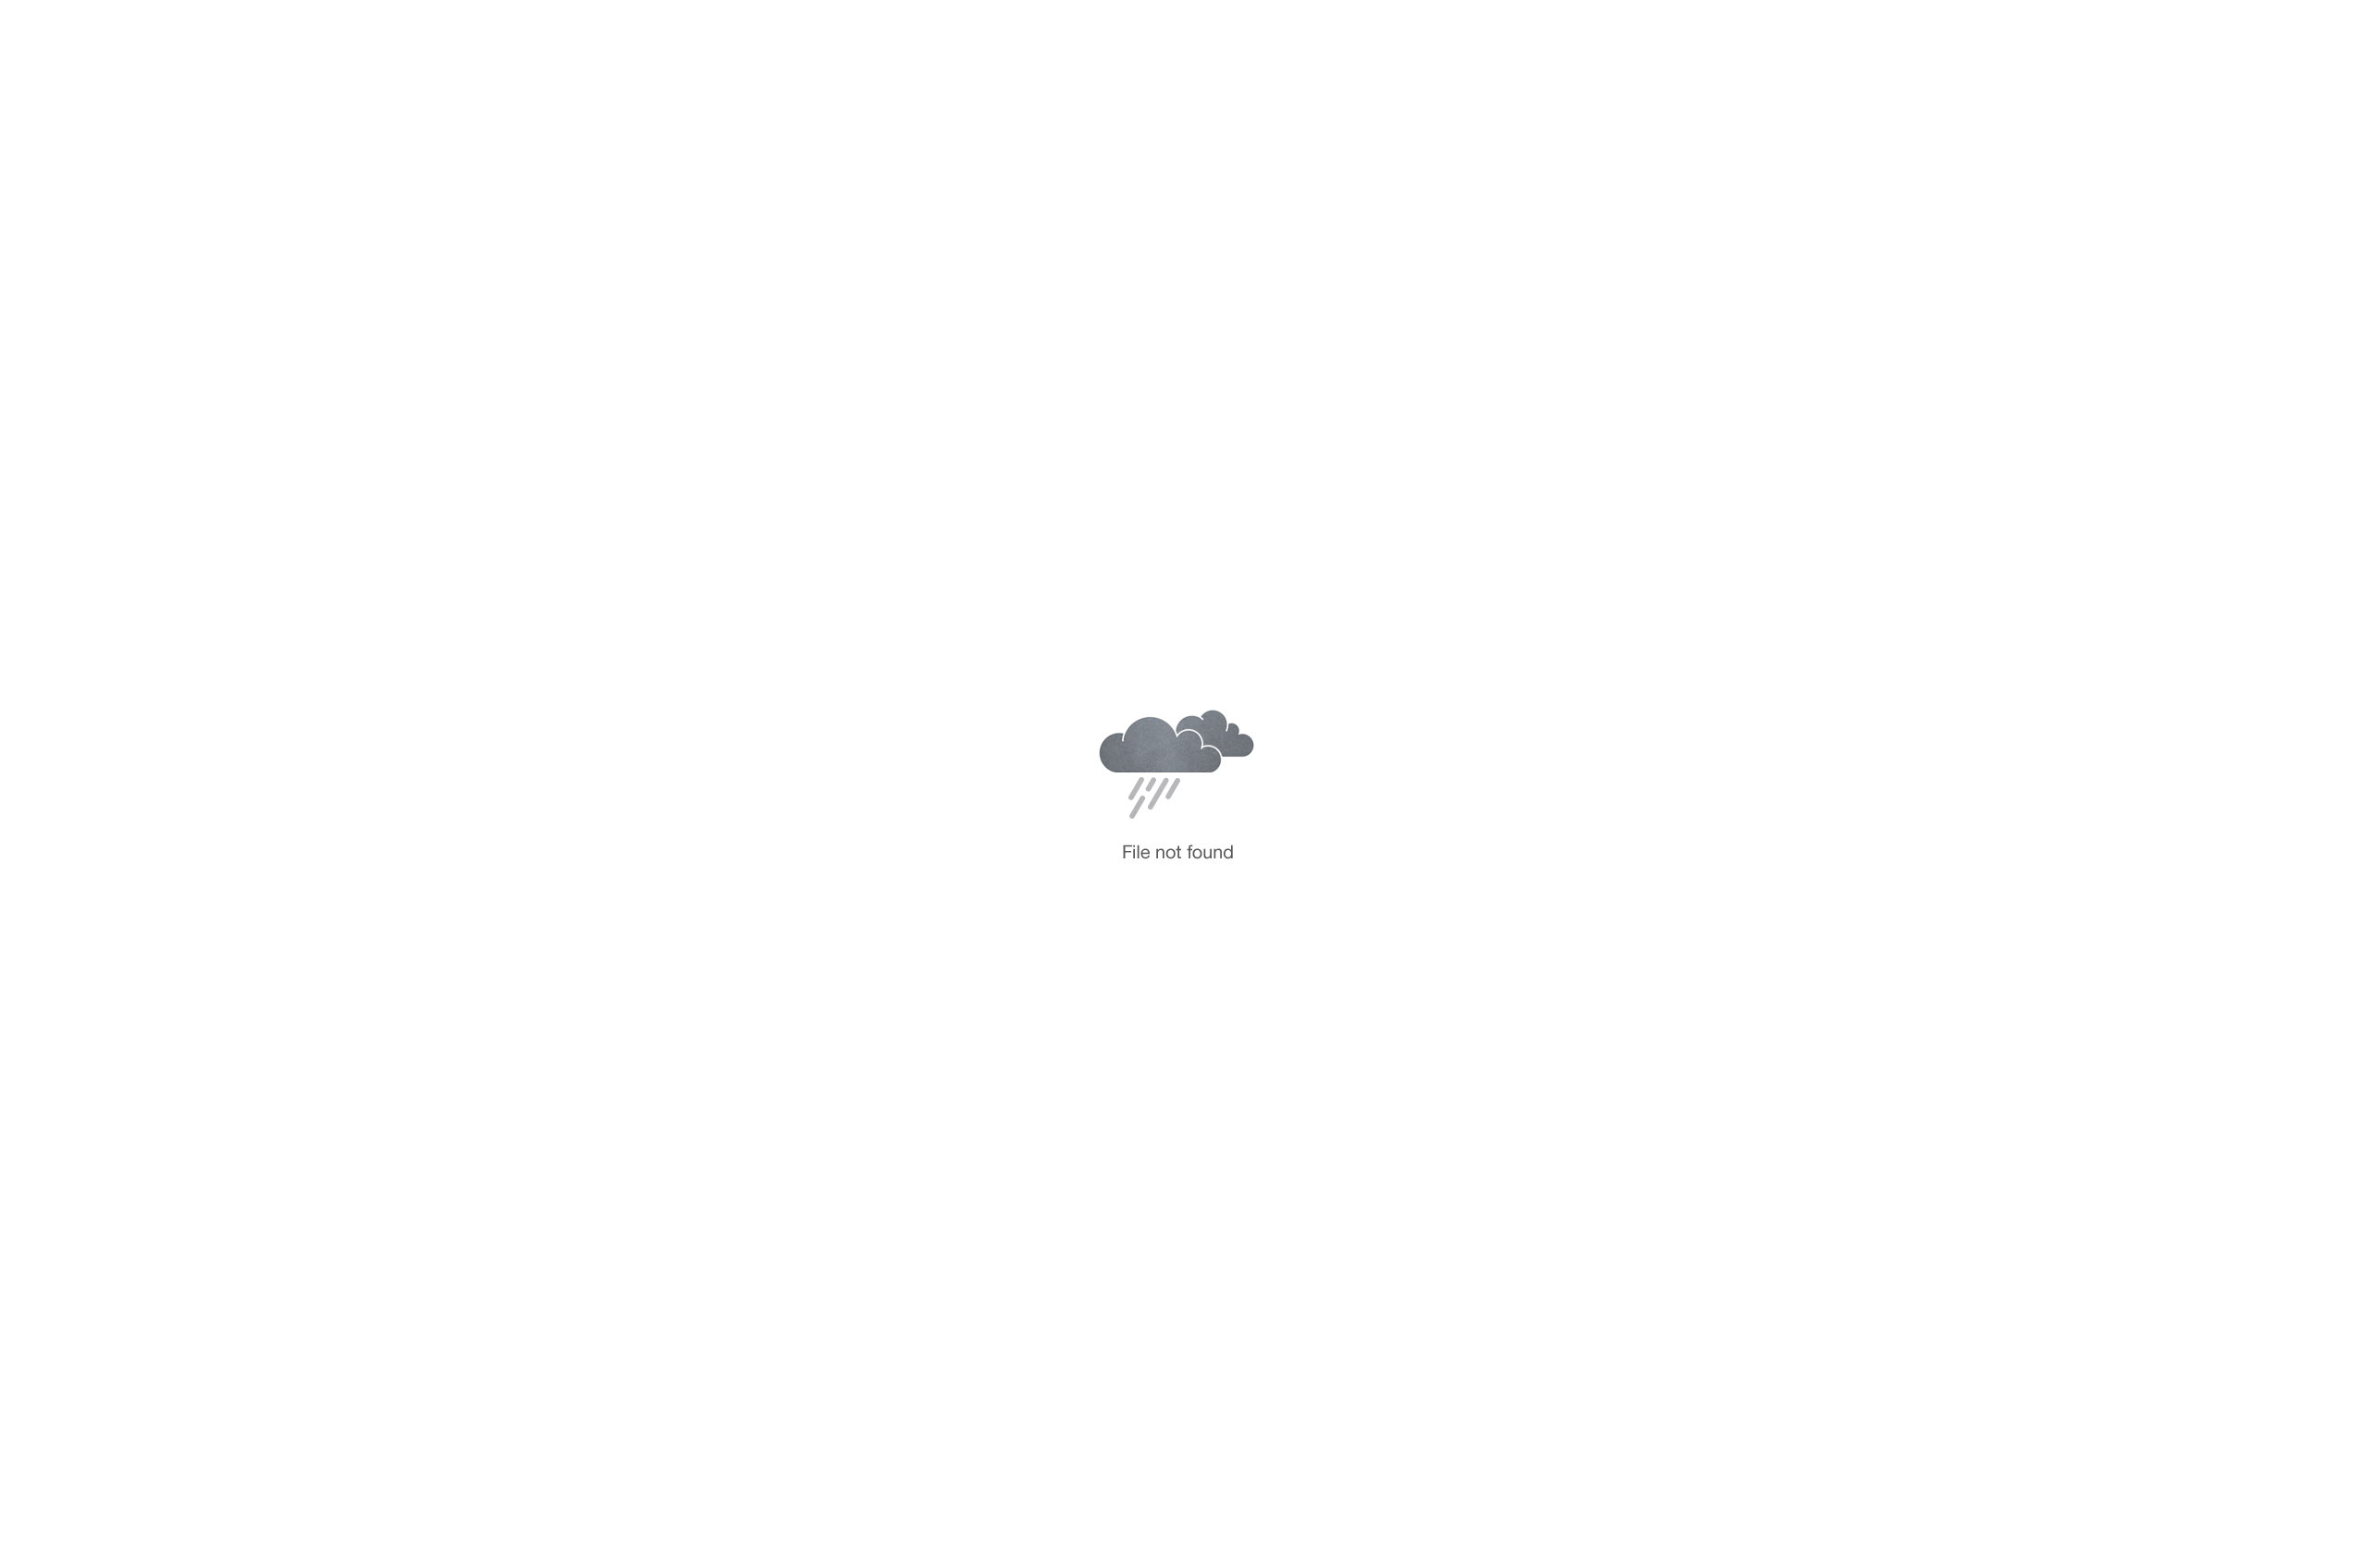 Eric-Flavier-Rugby-Sponsorise-me-image-4